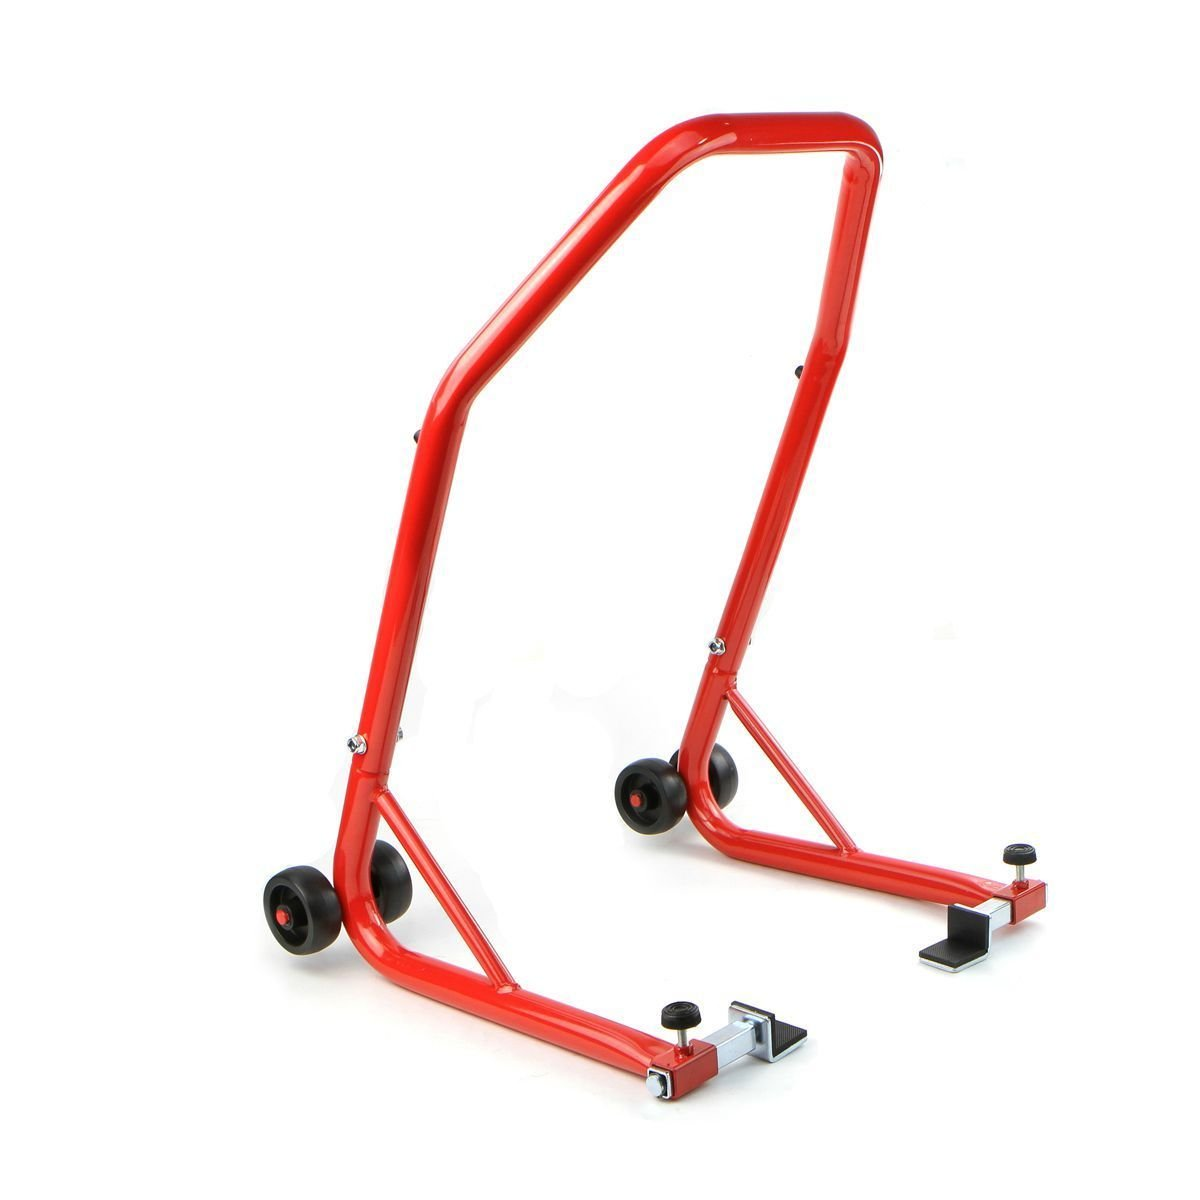 SKEMiDEX--- (1) Motorcycle Stand Bike Swingarm Lift Combo Shop Front Rear Portable Auto New Ideal to lift motorcycle bike front end Easy to assemble Raise the motorcycle by the forks by SKEMiDEX (Image #2)